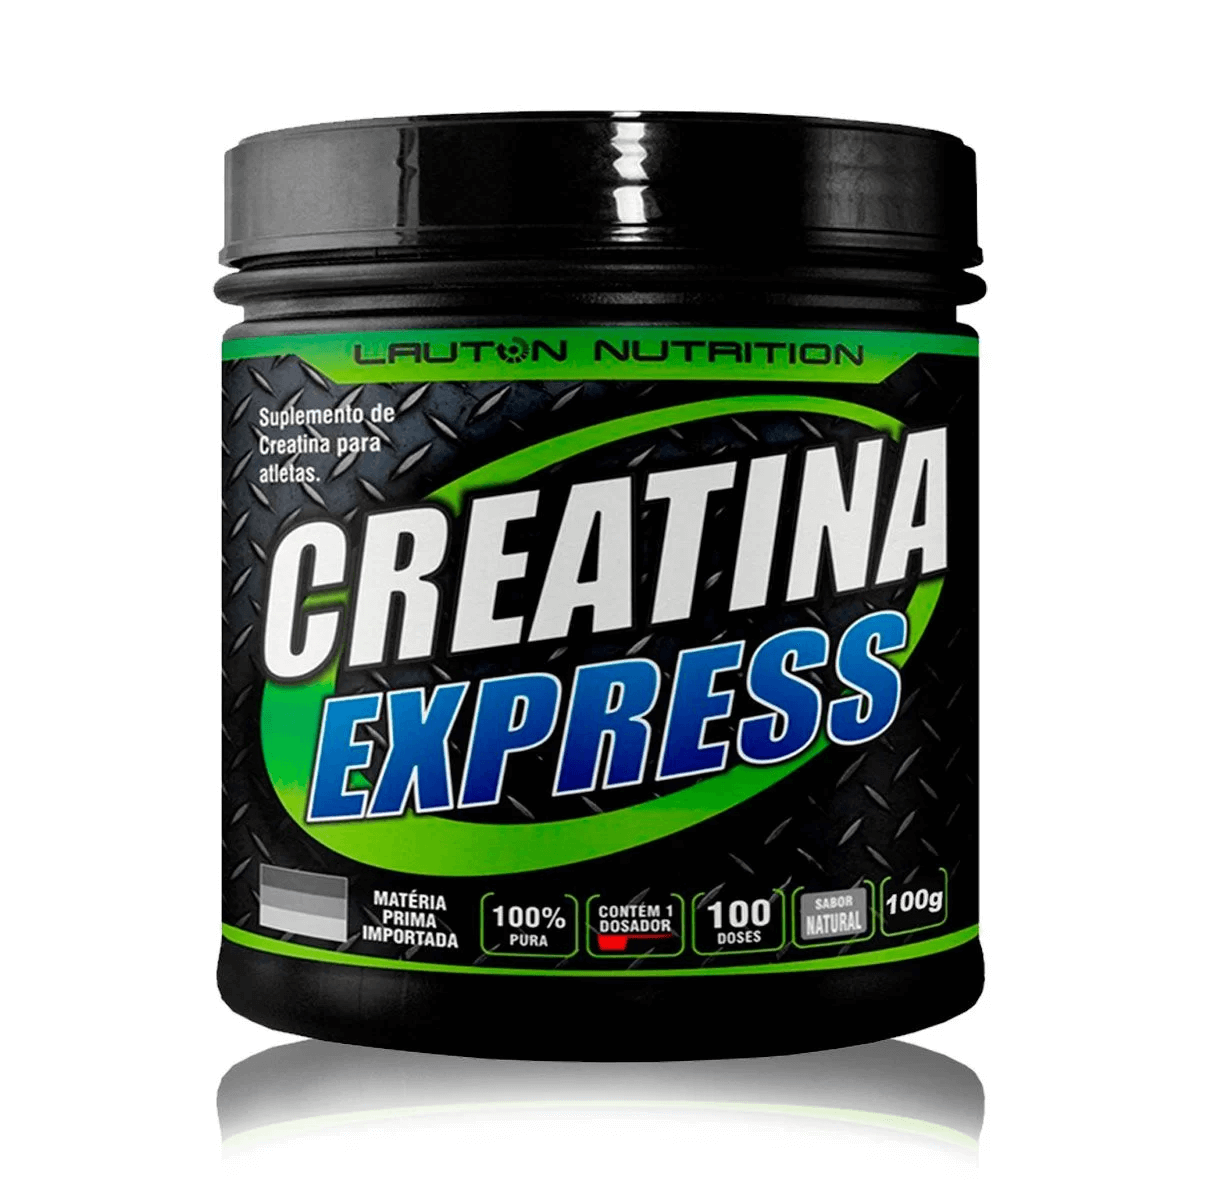 Creatina Express 100% Pura 100g - Lauton Nutrition